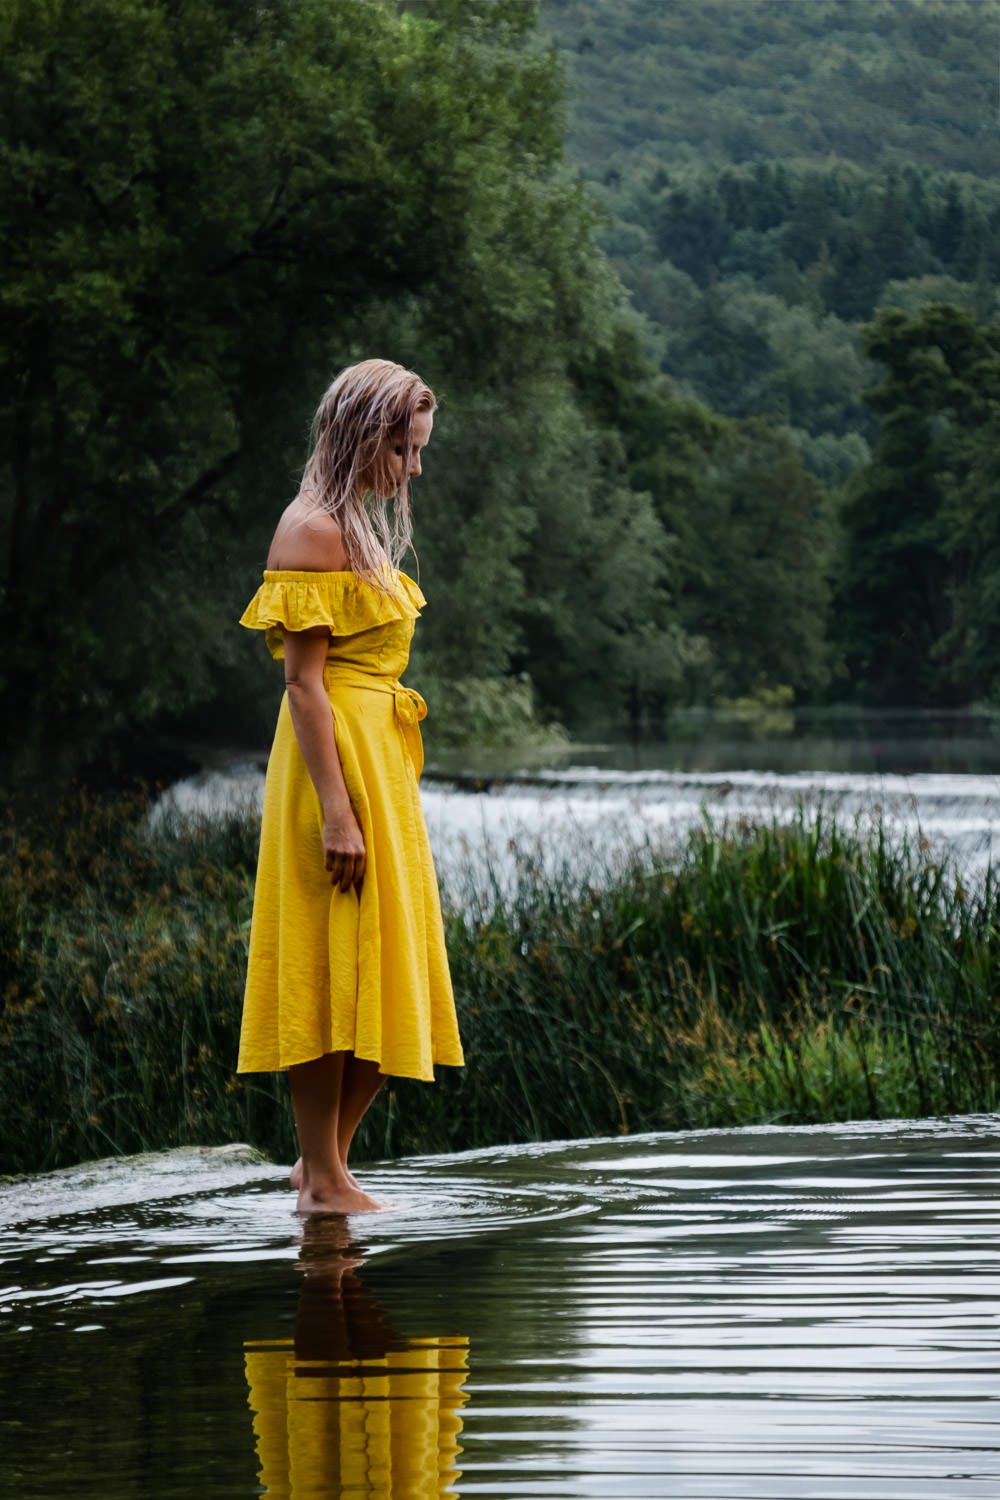 Women stood on the edge of the weir looking down to the rippling water, wearing a mustard yellow dress at Warleigh Weir, Bath.